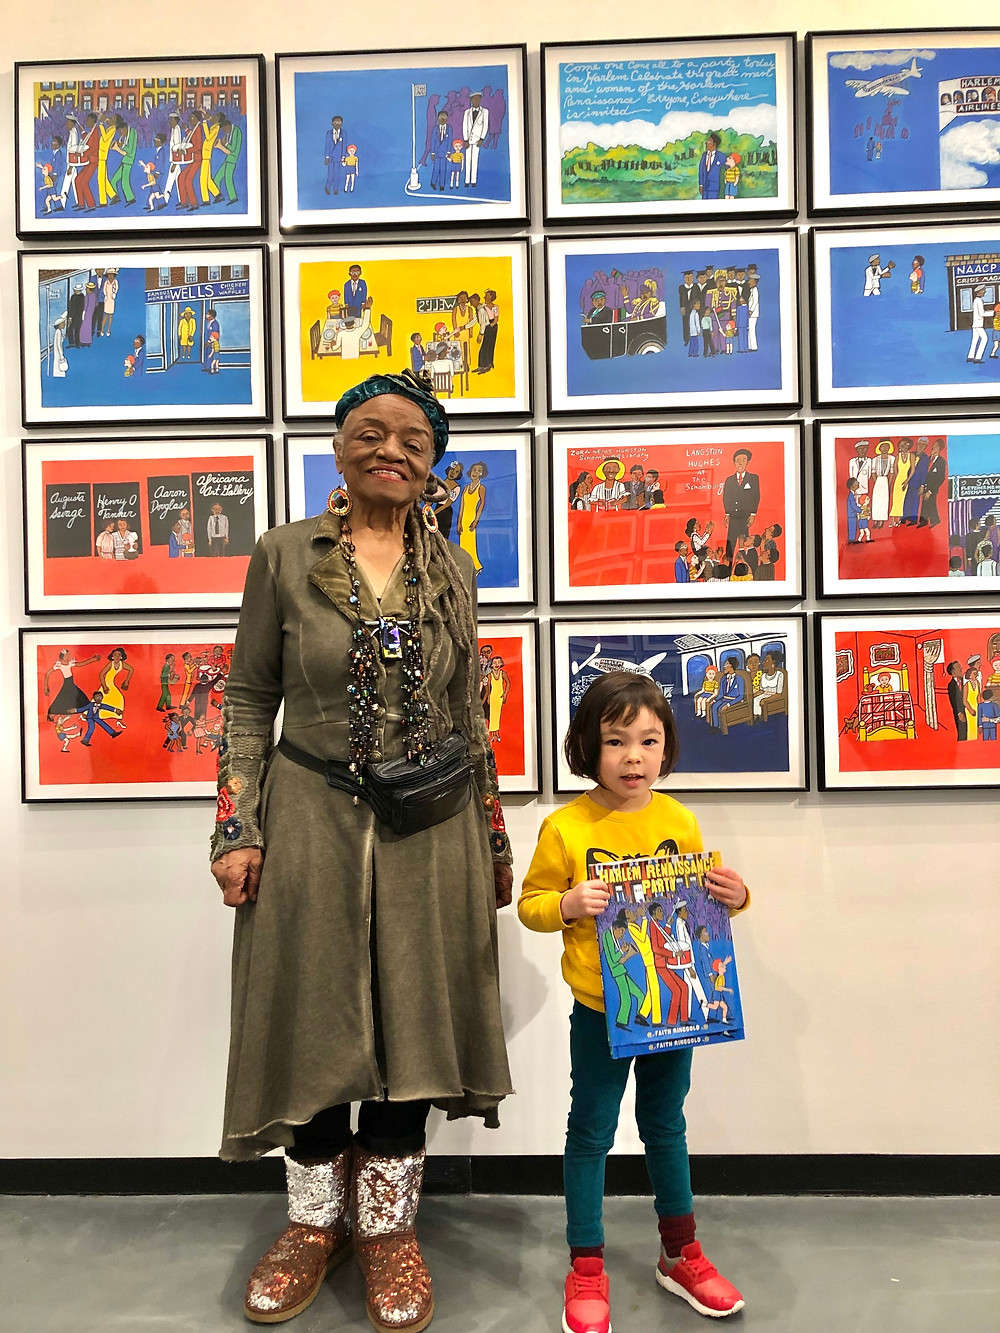 Curious G and Me, Faith Ringgold, Tar Beach, Children's Book Authors, Sugar Hill Children's Museum of Art and Storytelling, FREE museums in New York City NYC